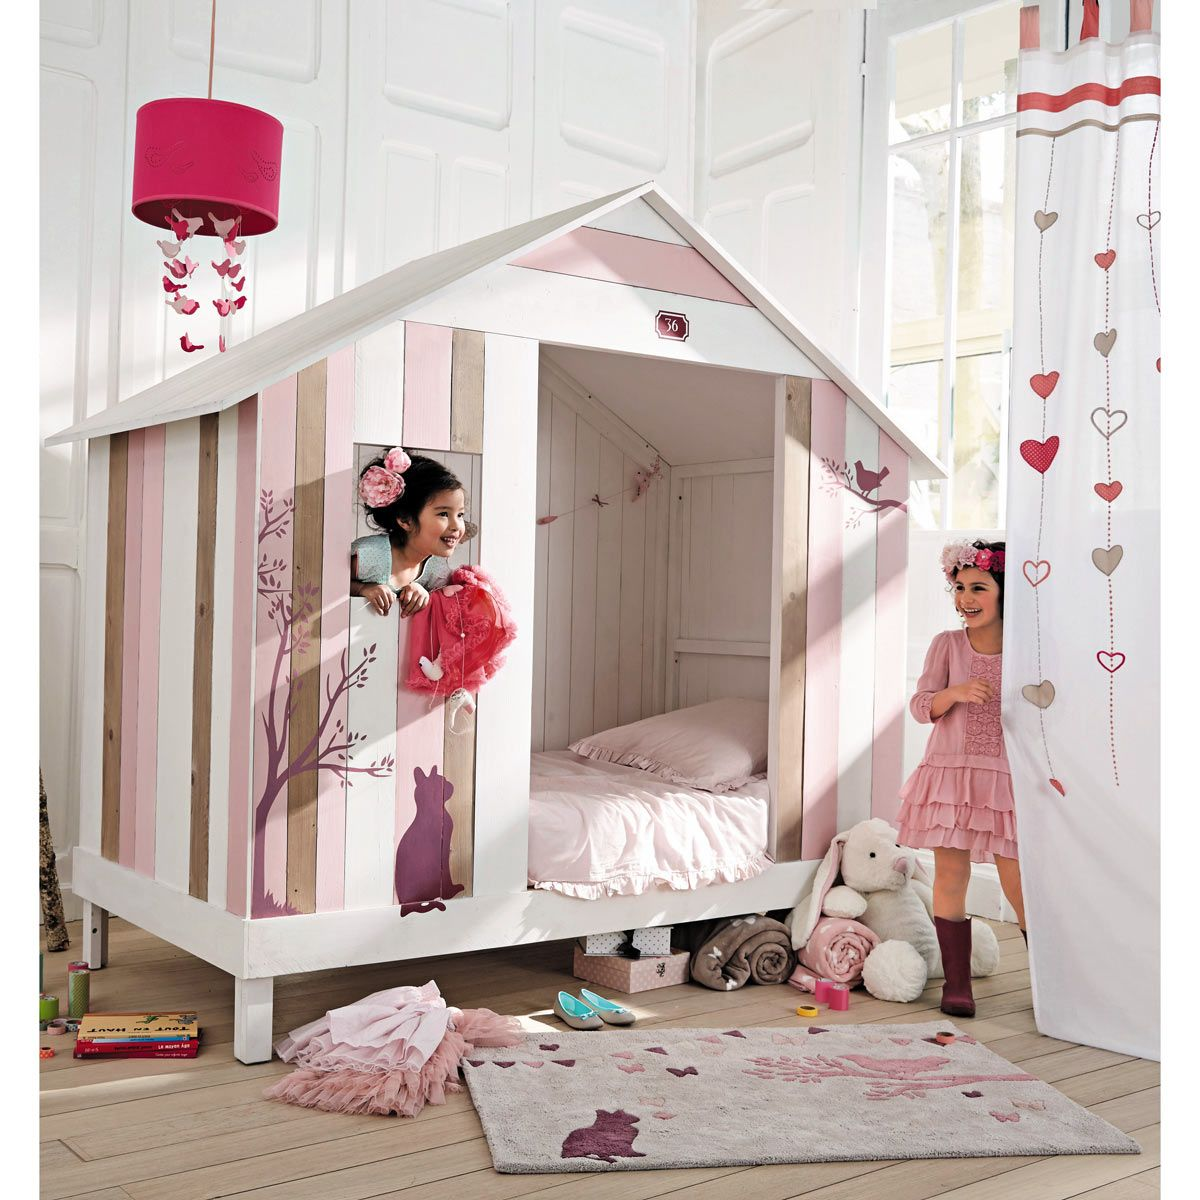 kinderbett in h ttenform rosa wei violette kinderzimmer betten pinterest kinderbetten. Black Bedroom Furniture Sets. Home Design Ideas